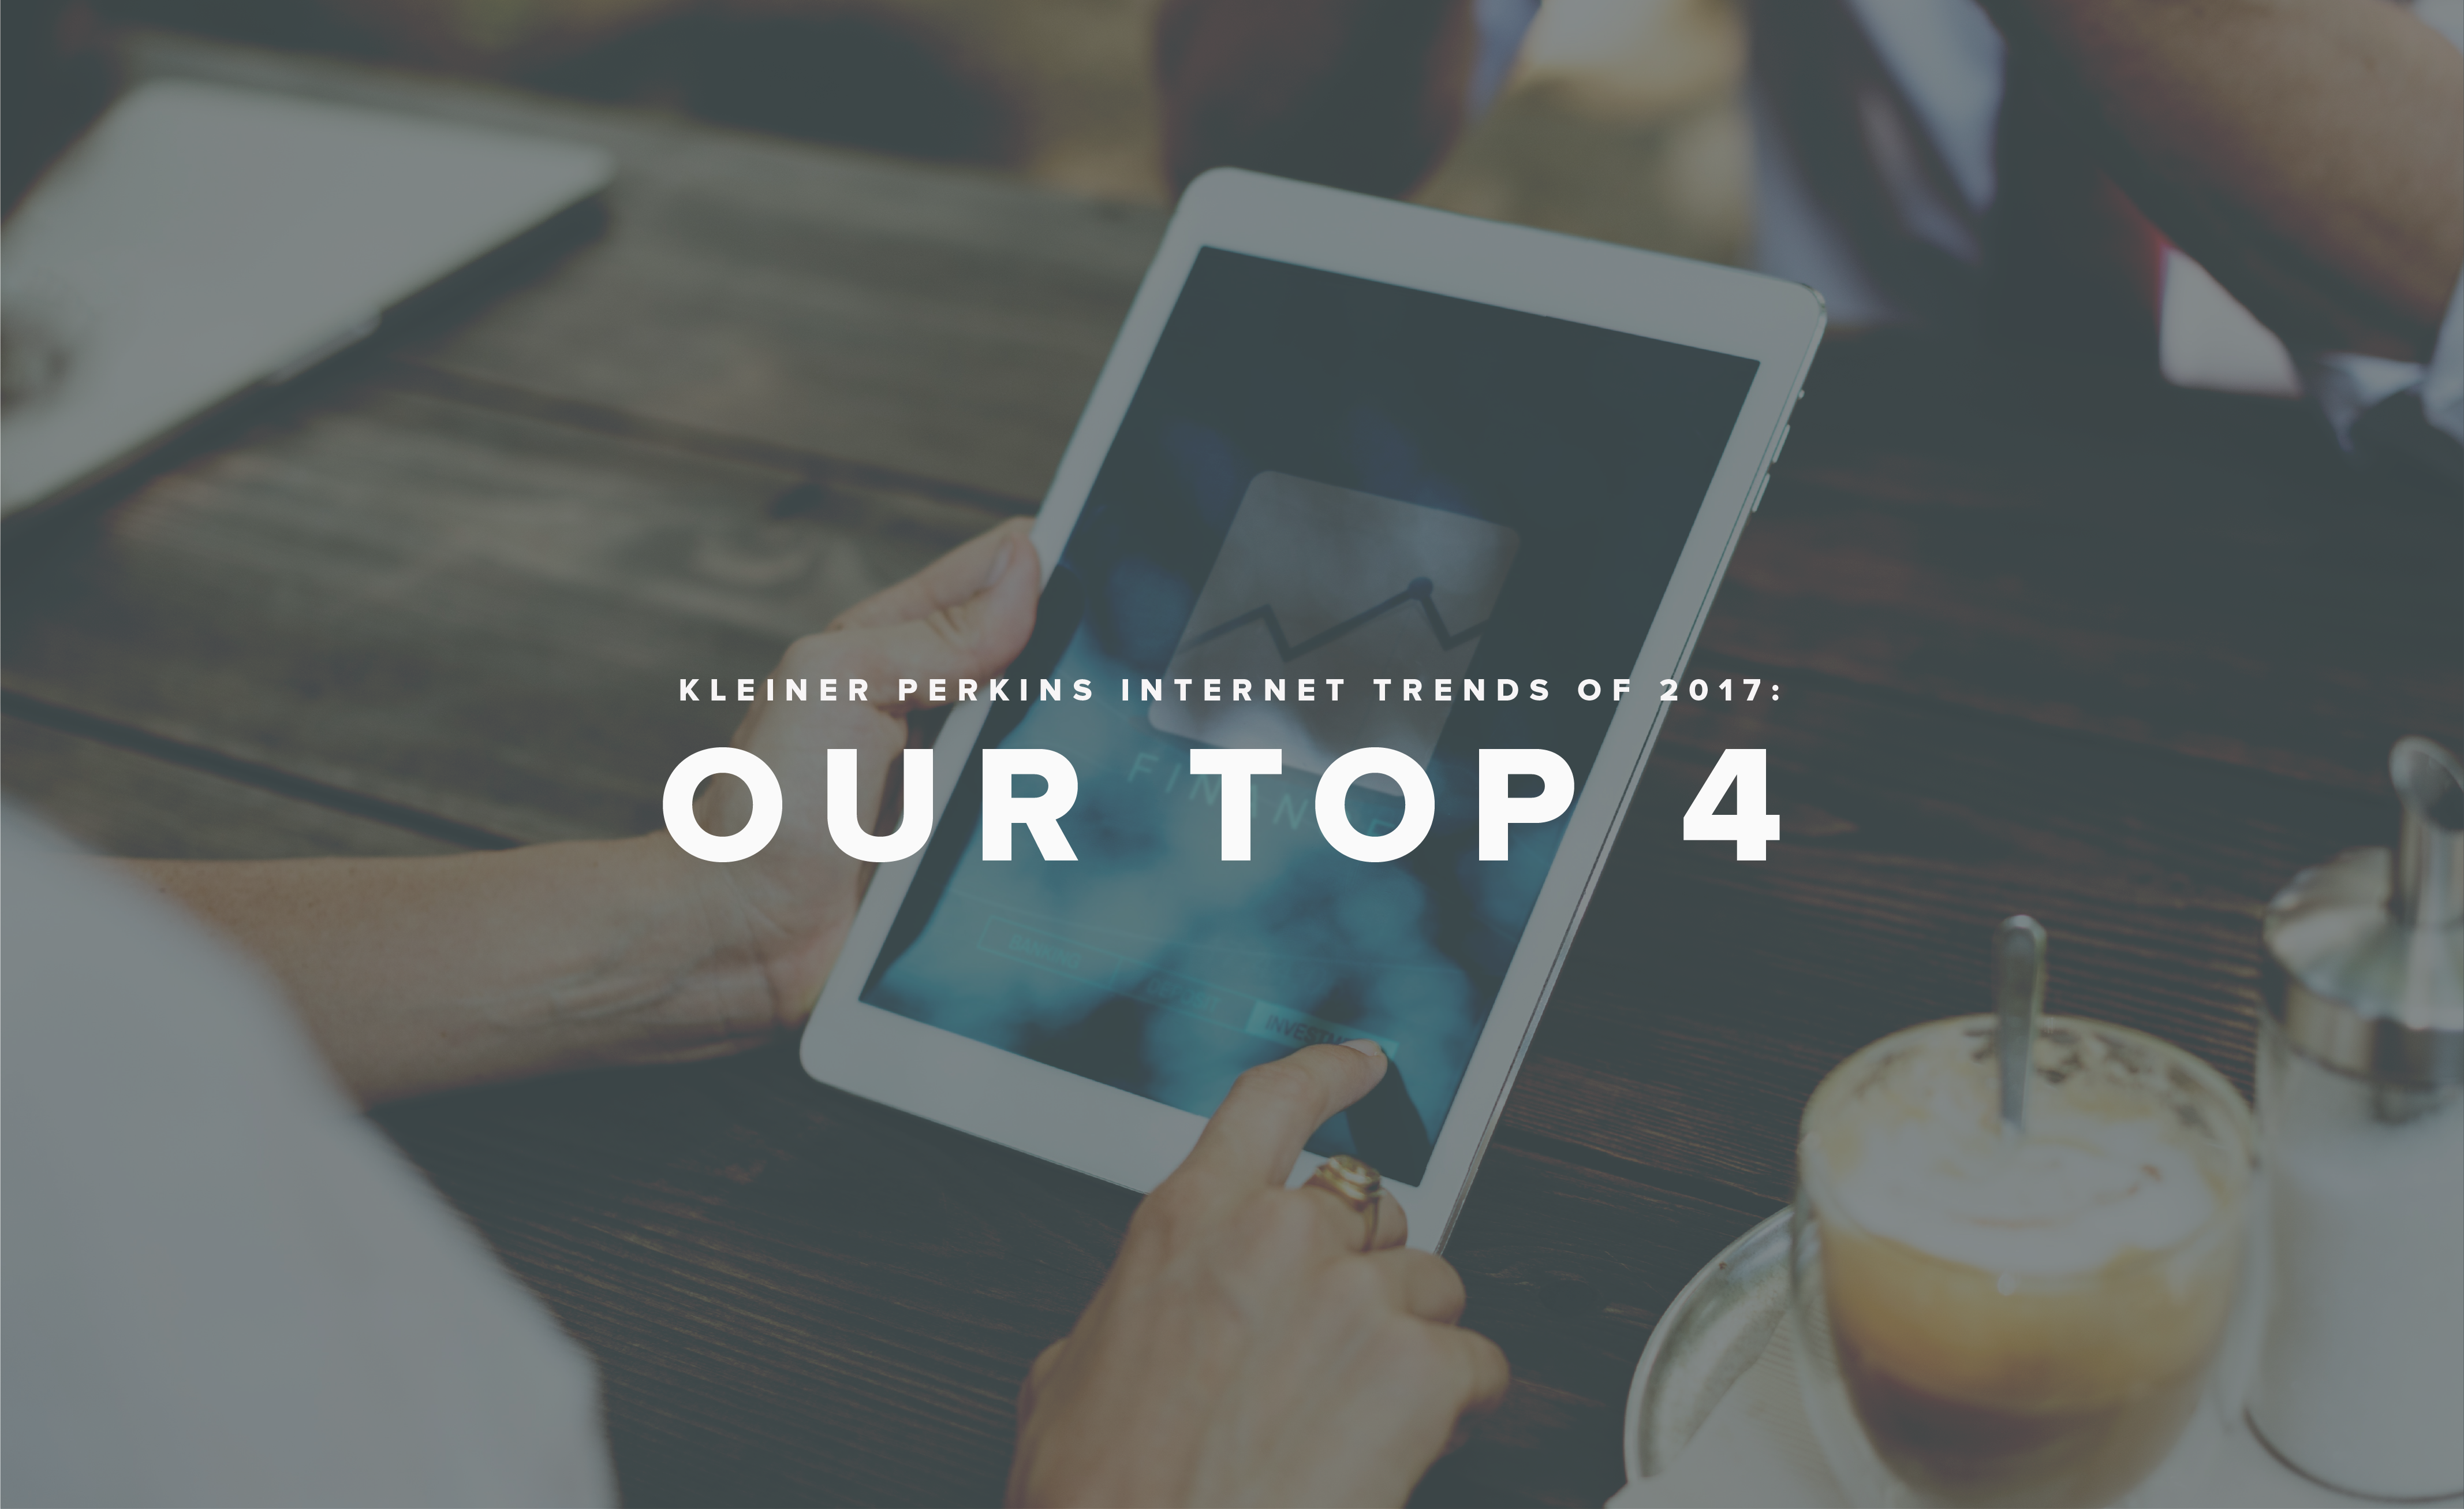 Our top 4 internet trends.